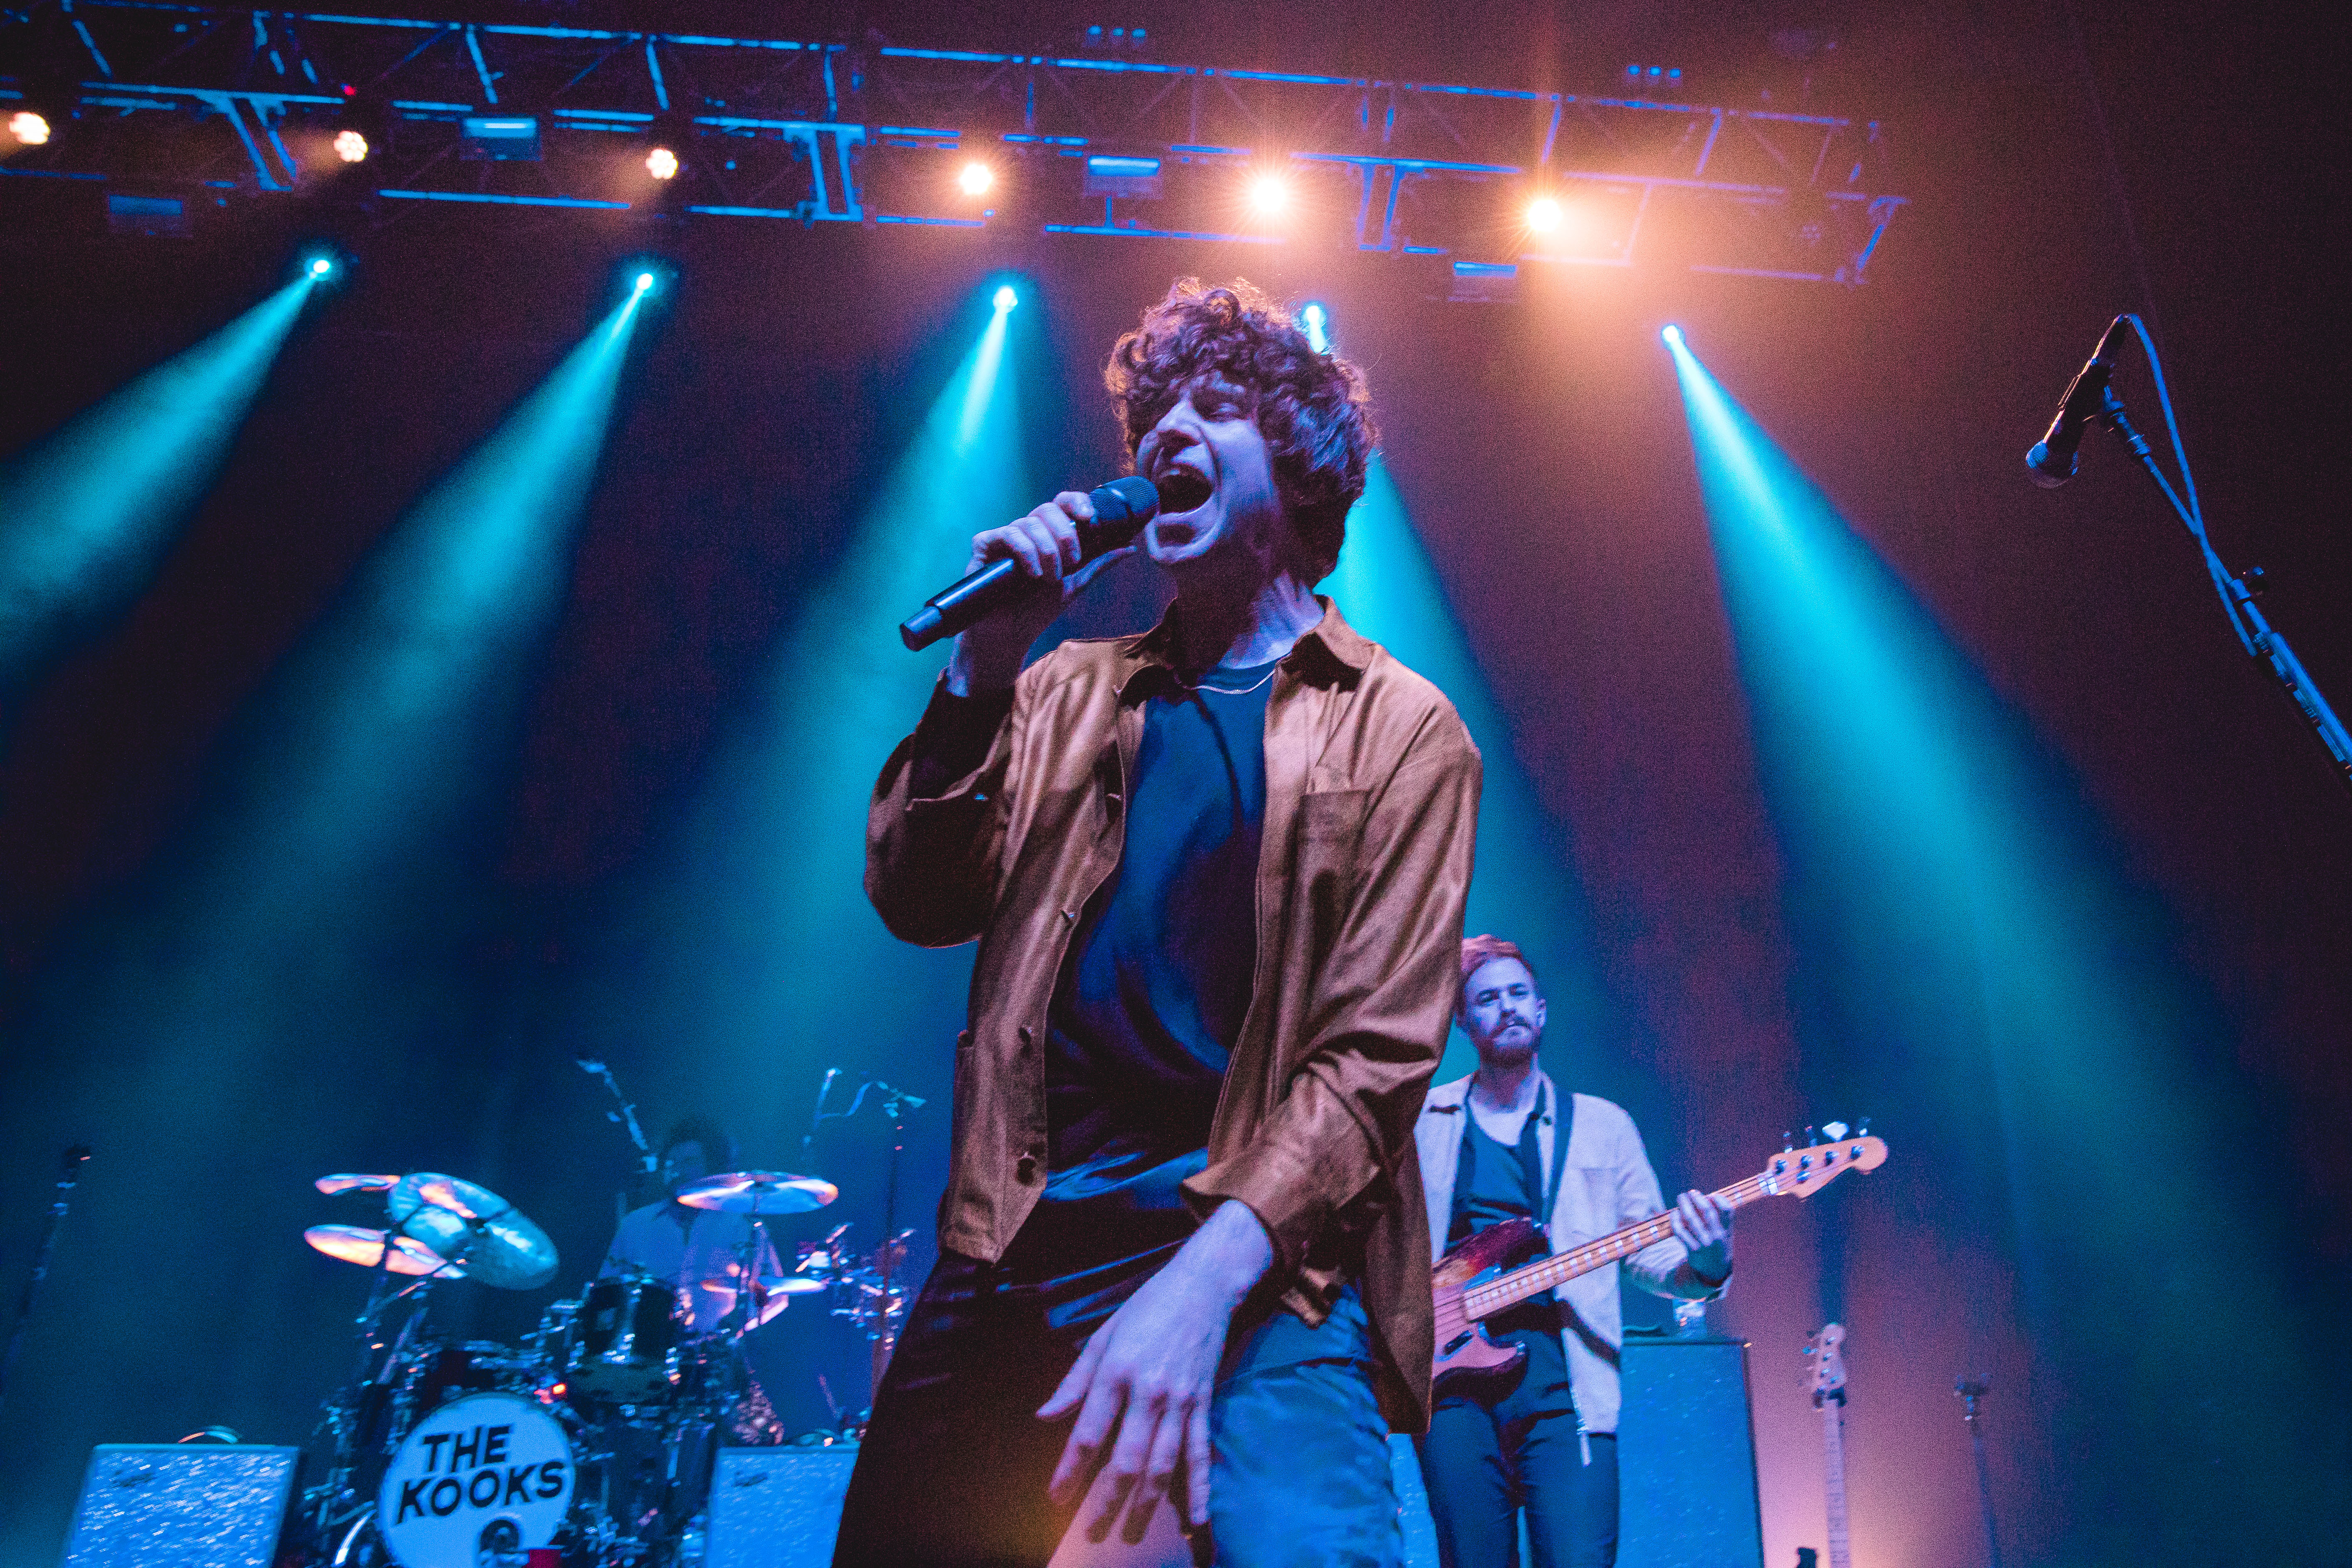 The Kooks bring out all of their best hits for Chicago